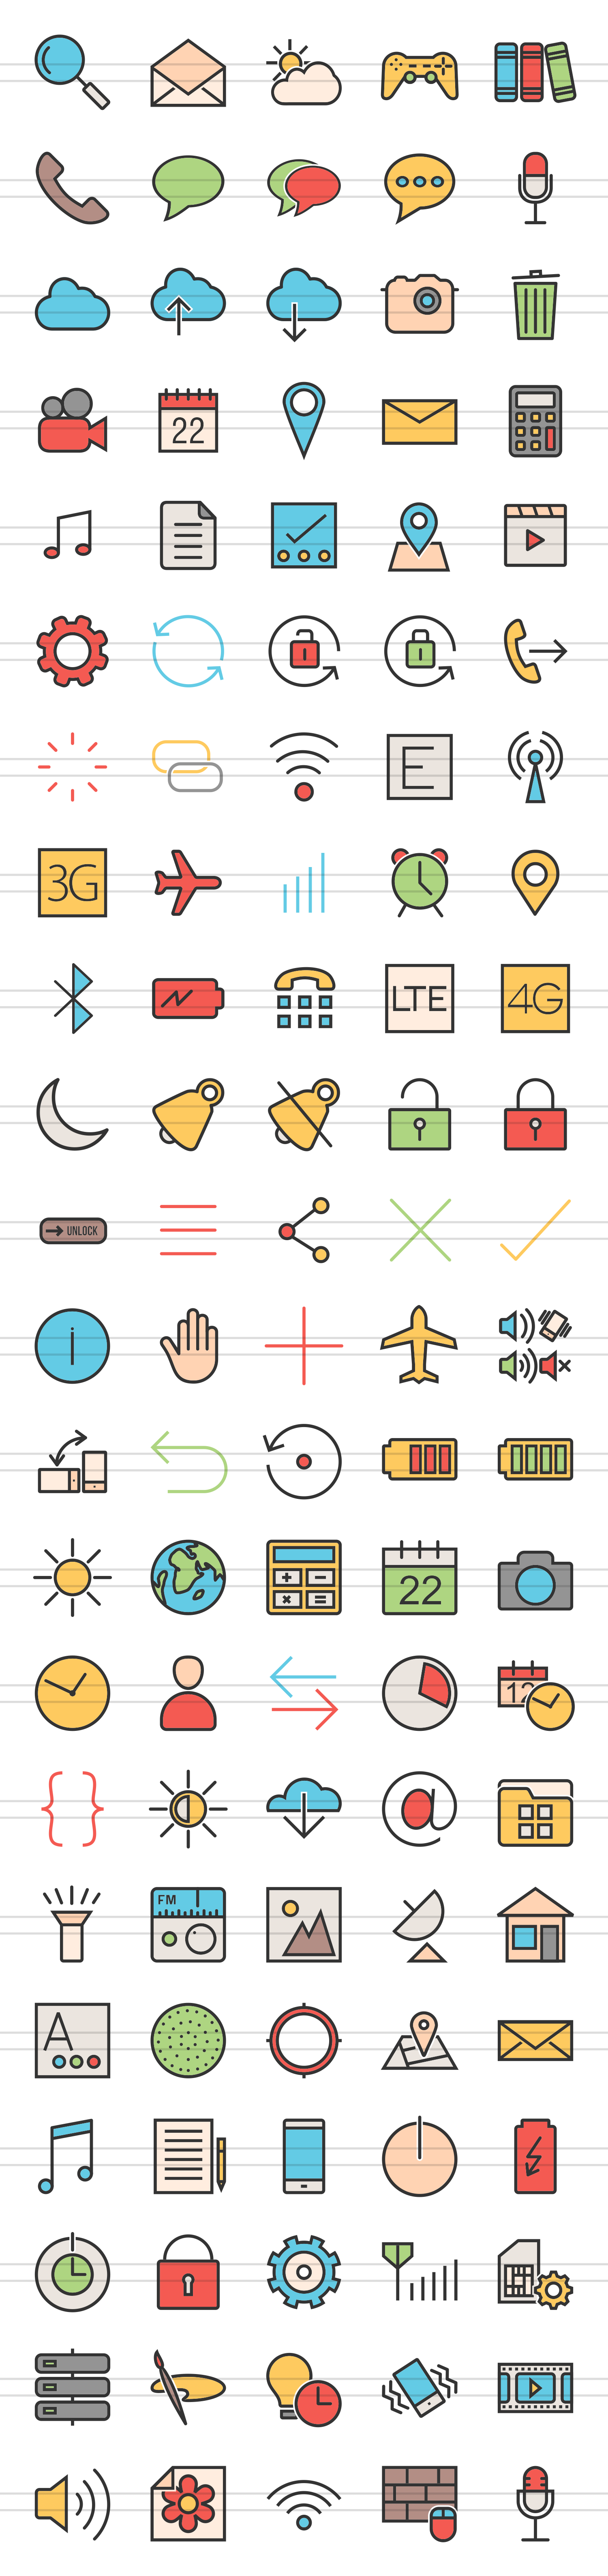 110 Mobile Interface Filled Line Icons example image 2